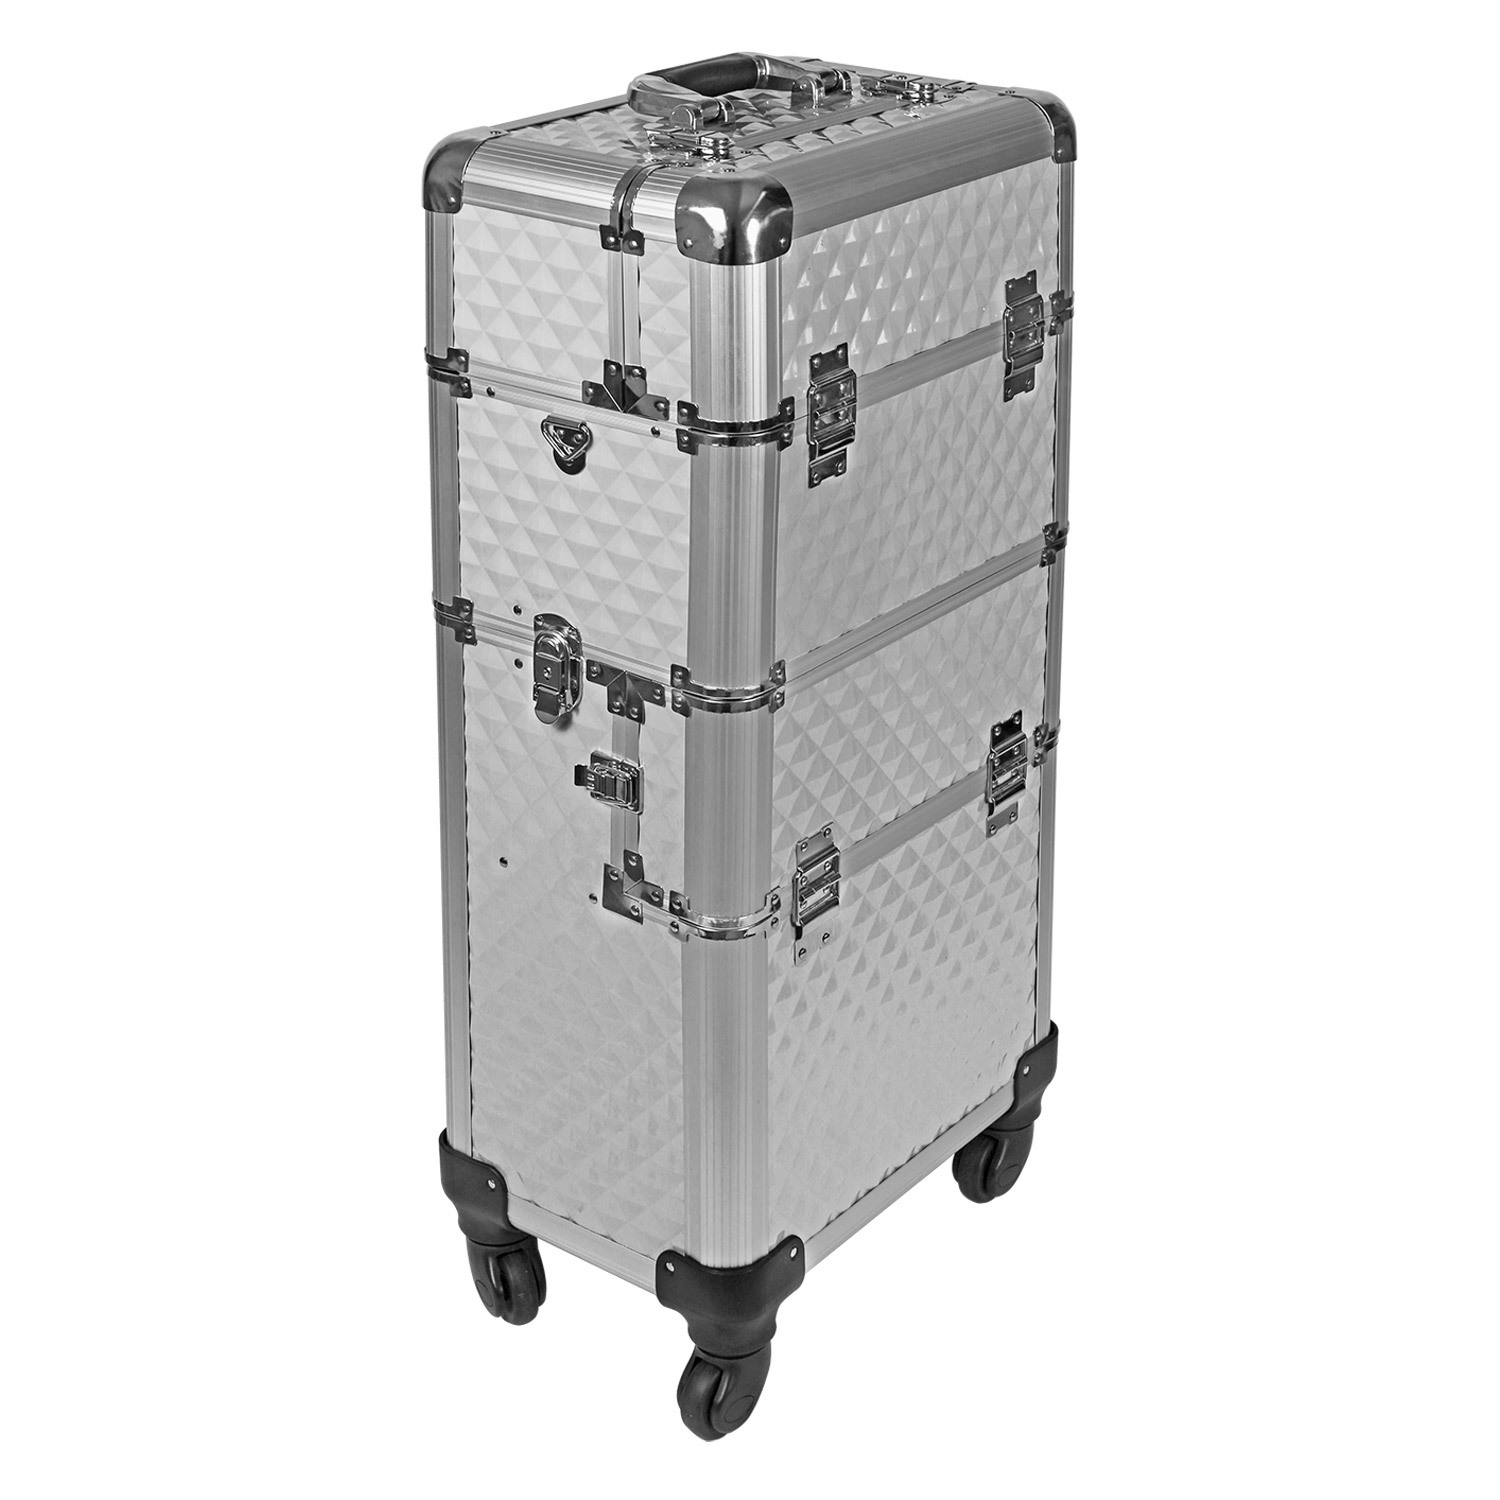 pilotenkoffer silber trolley beauty case alu 4 werkzeugtrolley deckel. Black Bedroom Furniture Sets. Home Design Ideas